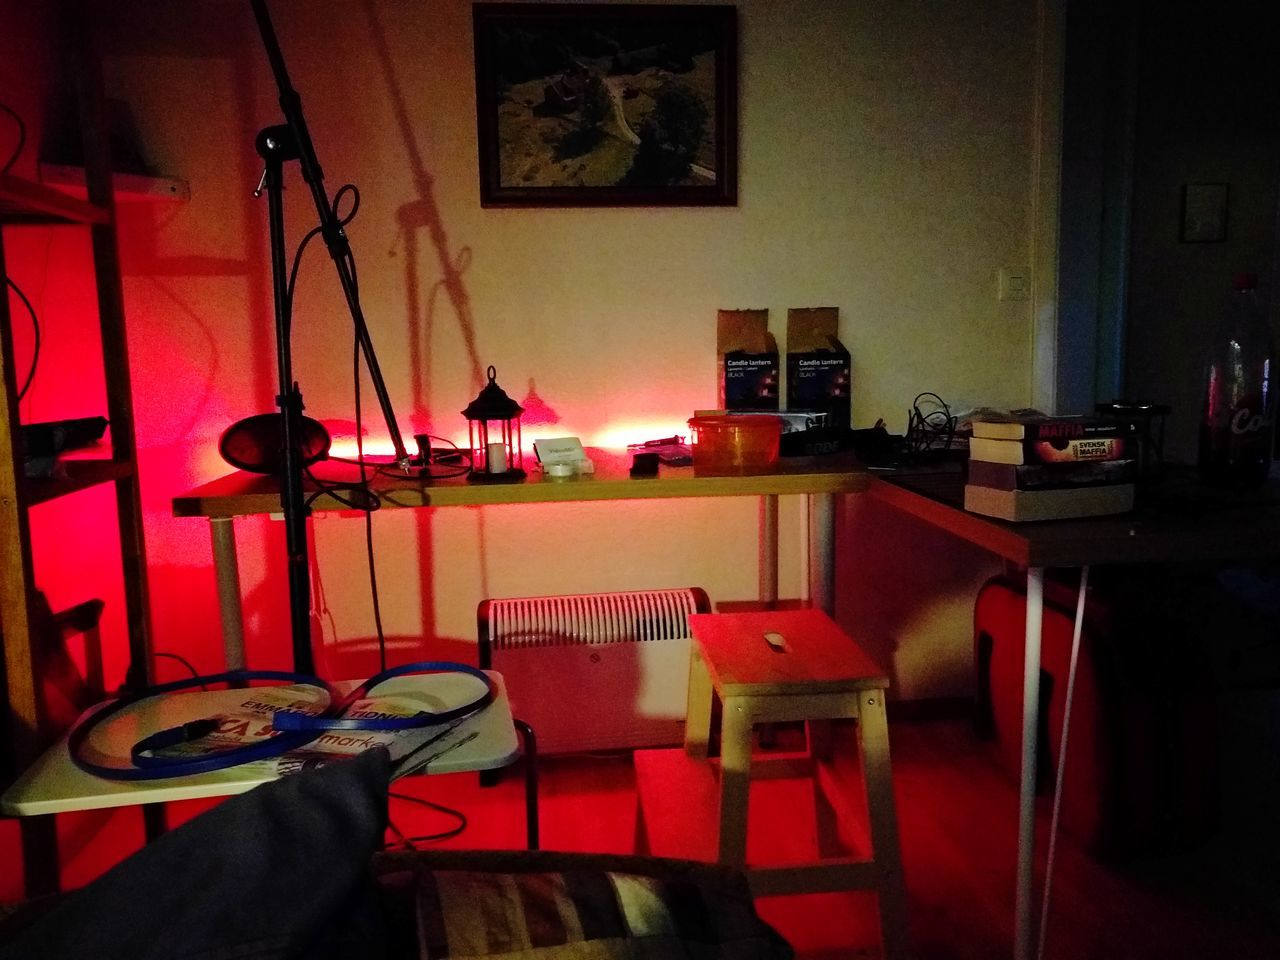 Desk Before Cleaning Indoors  Nexus 6P Manual Camera App Lowlight Table Red No People